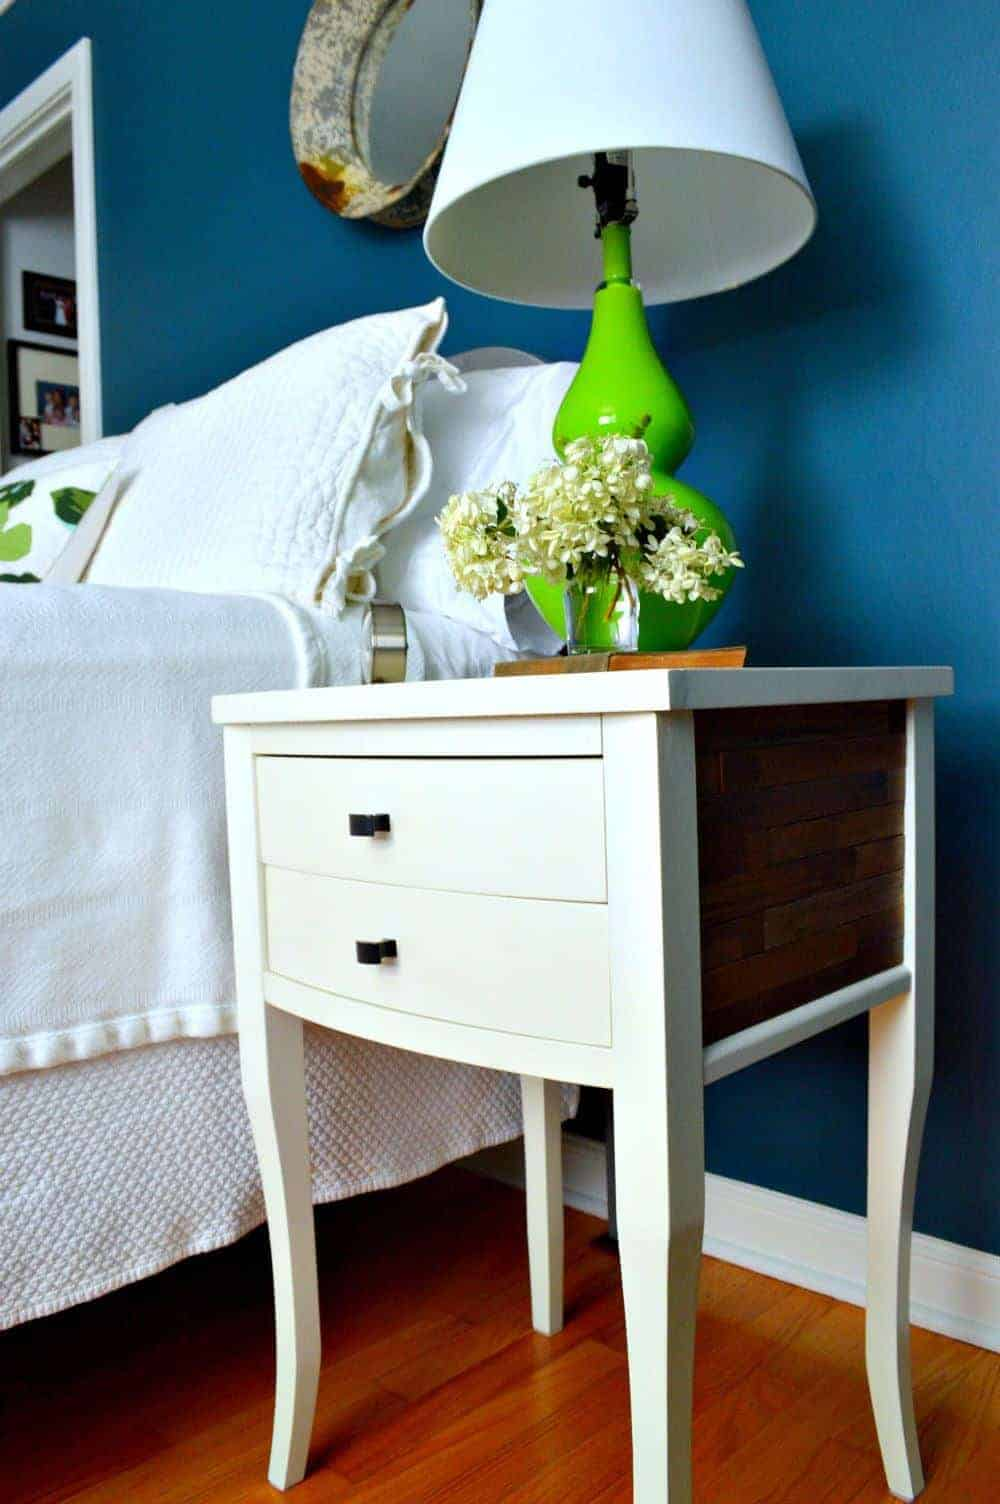 A DIY nightstand makeover using paint sticks and stain | chatfieldcourt.com